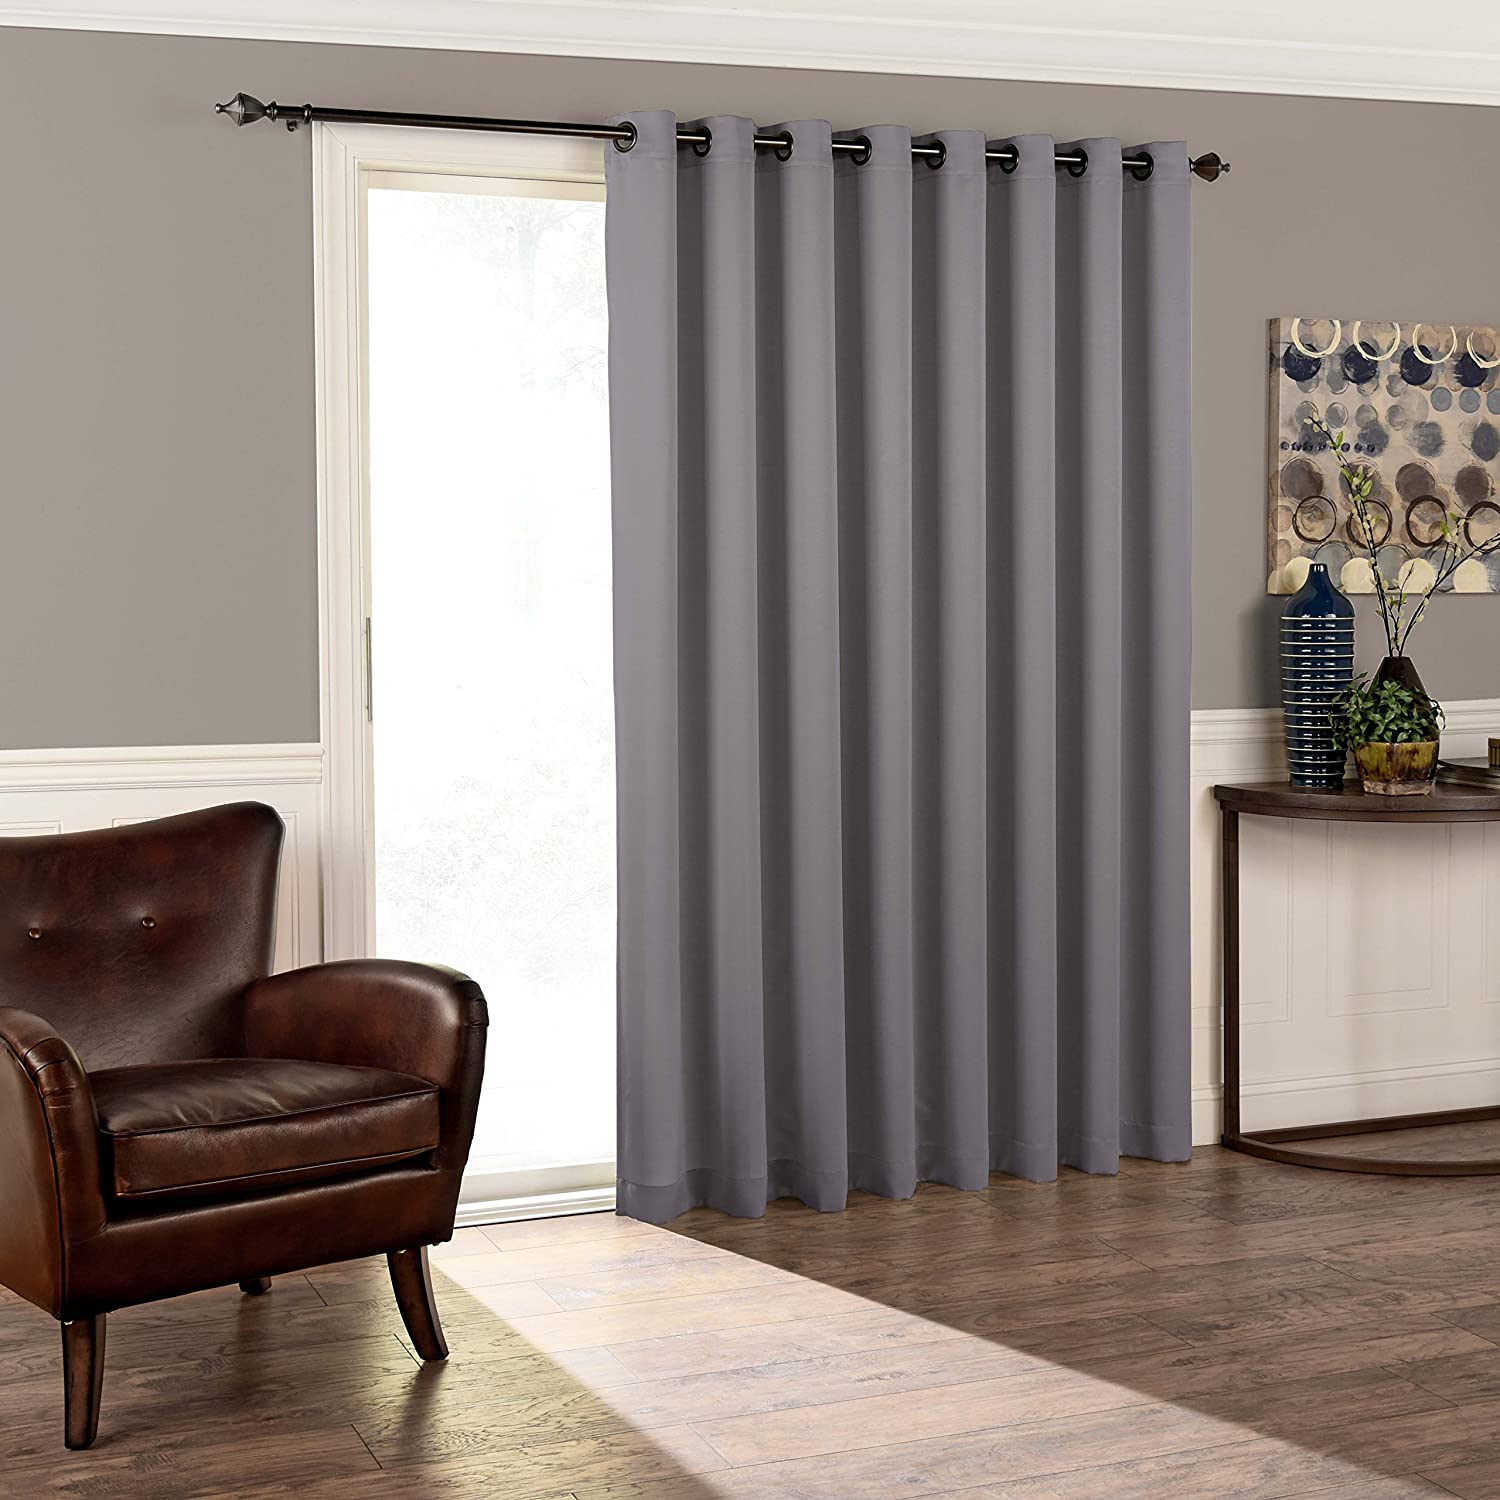 Eclipse Tricia Window Door Panel, 26 by 68, Chocolate 26 by 68 Ellery Homestyles 14898026068CHC